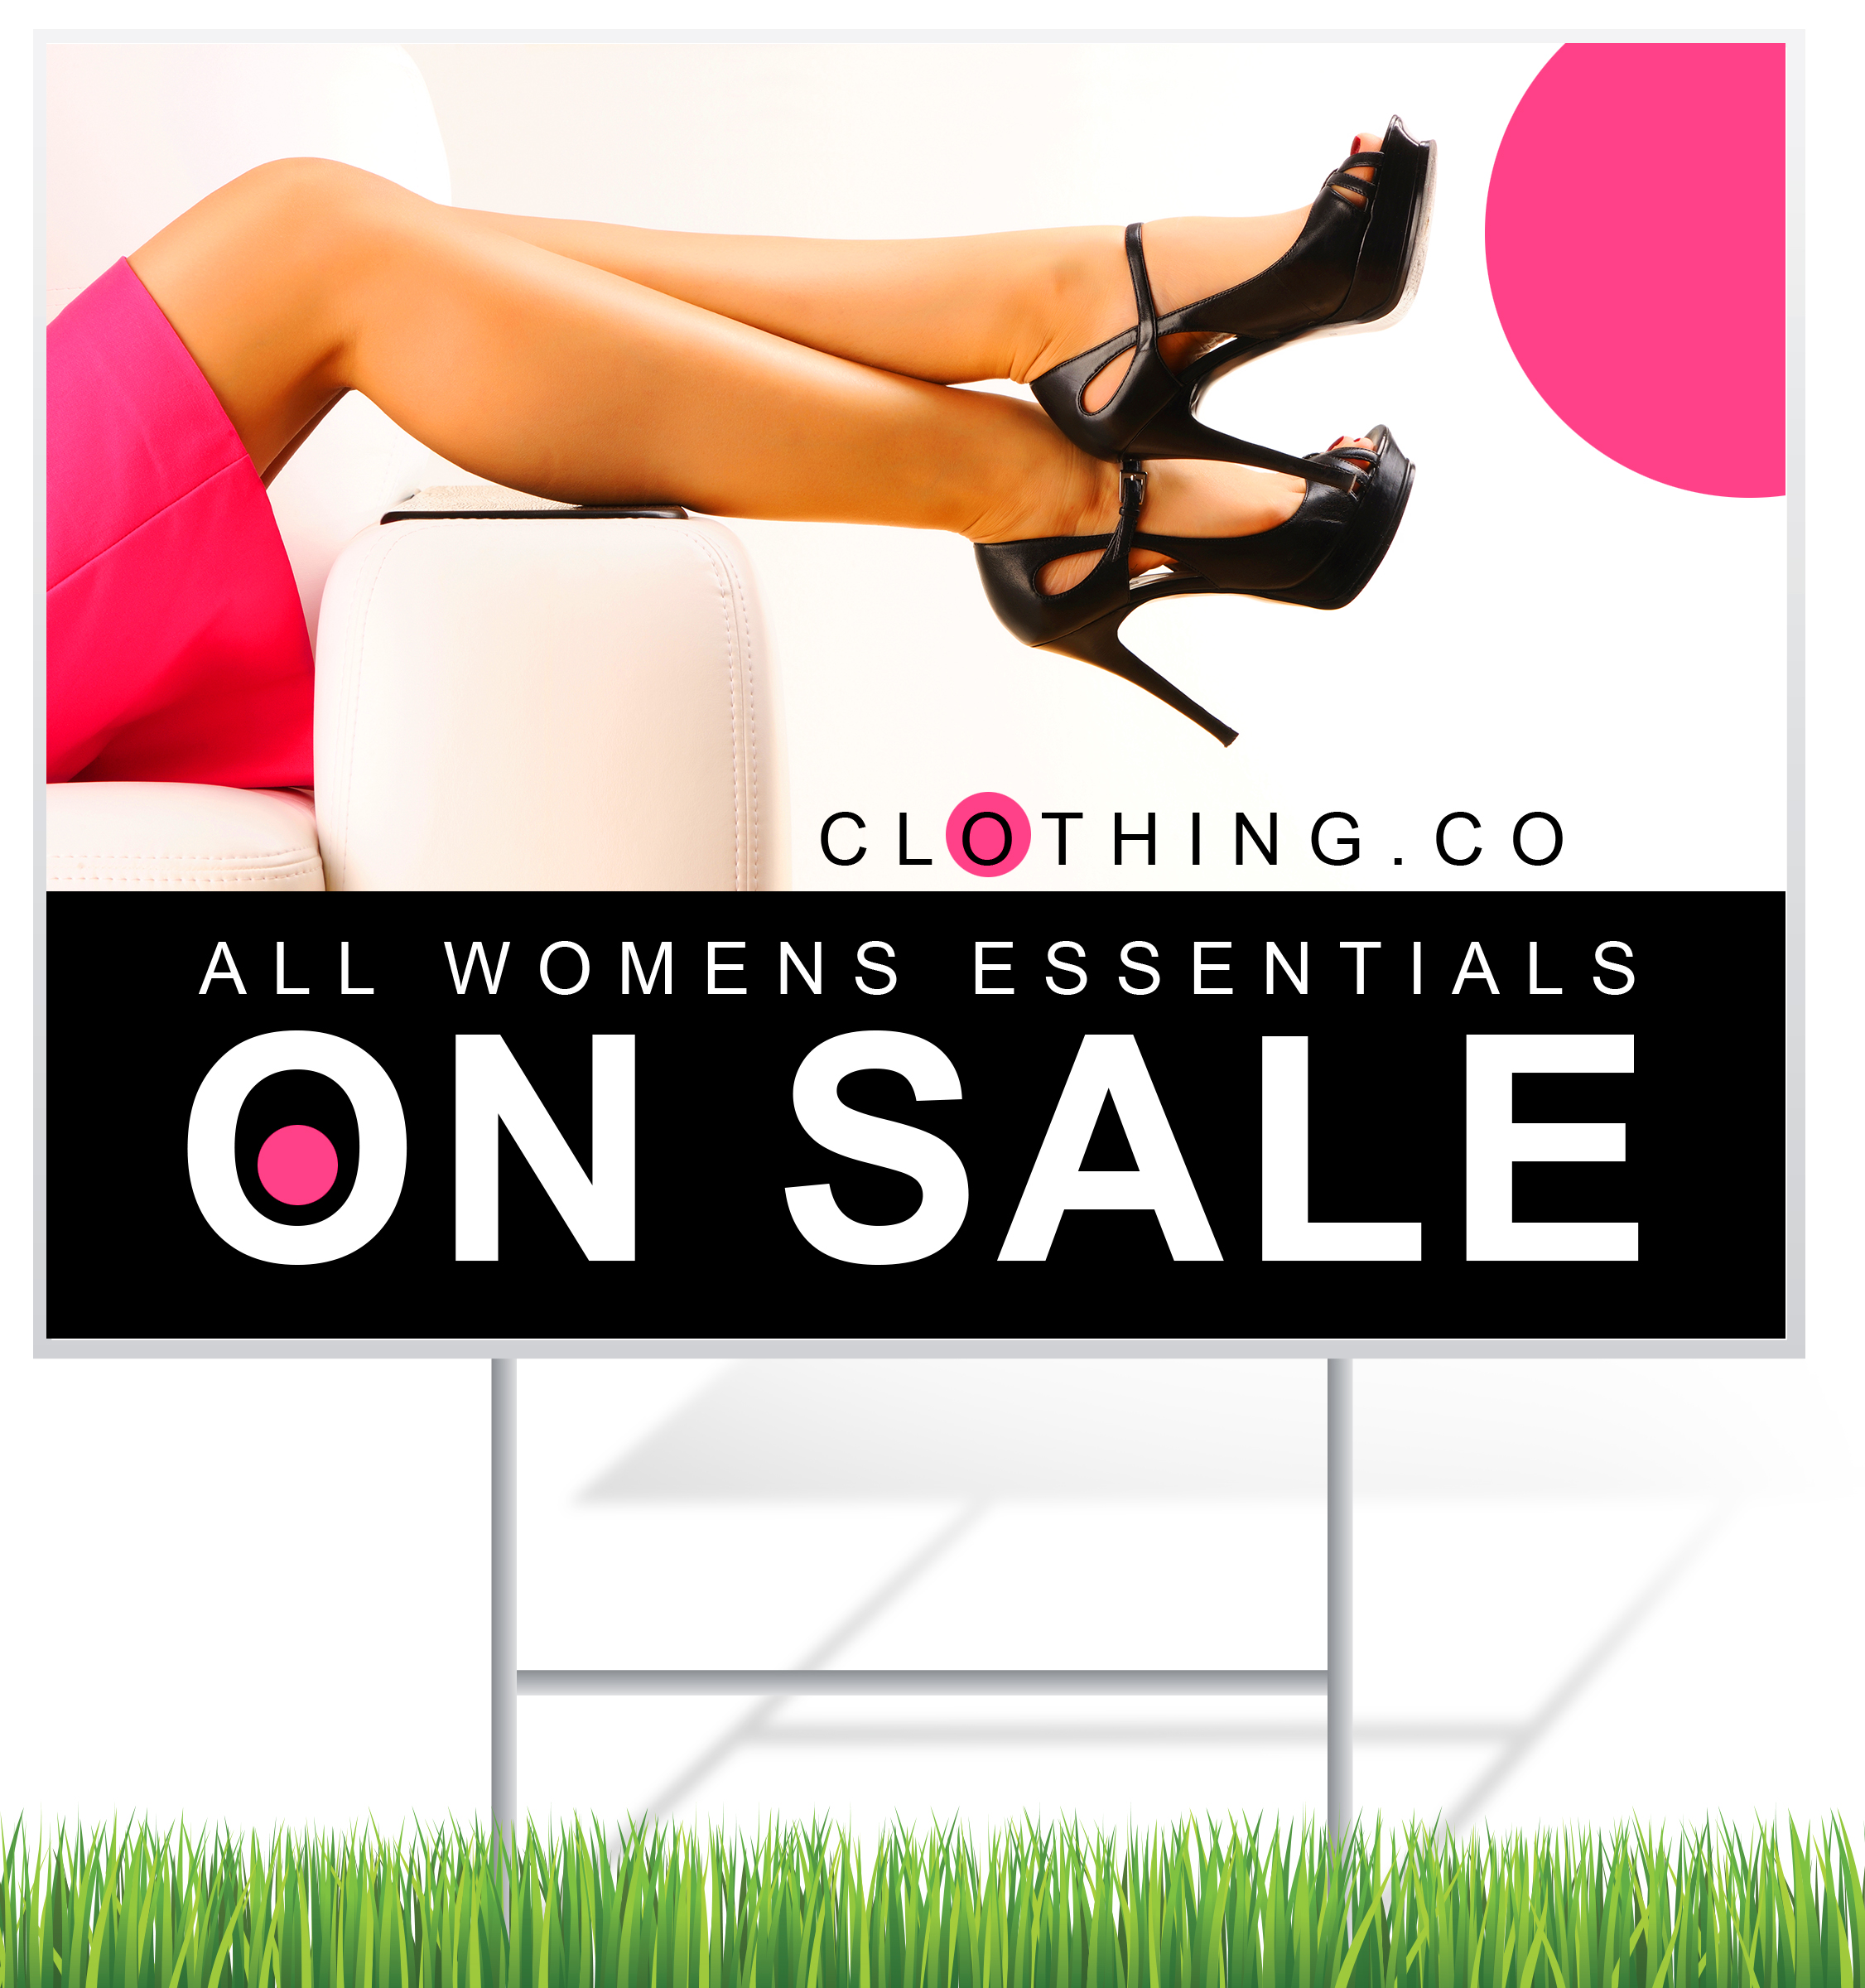 Clothing Sale Lawn Sign Example | LawnSigns.com